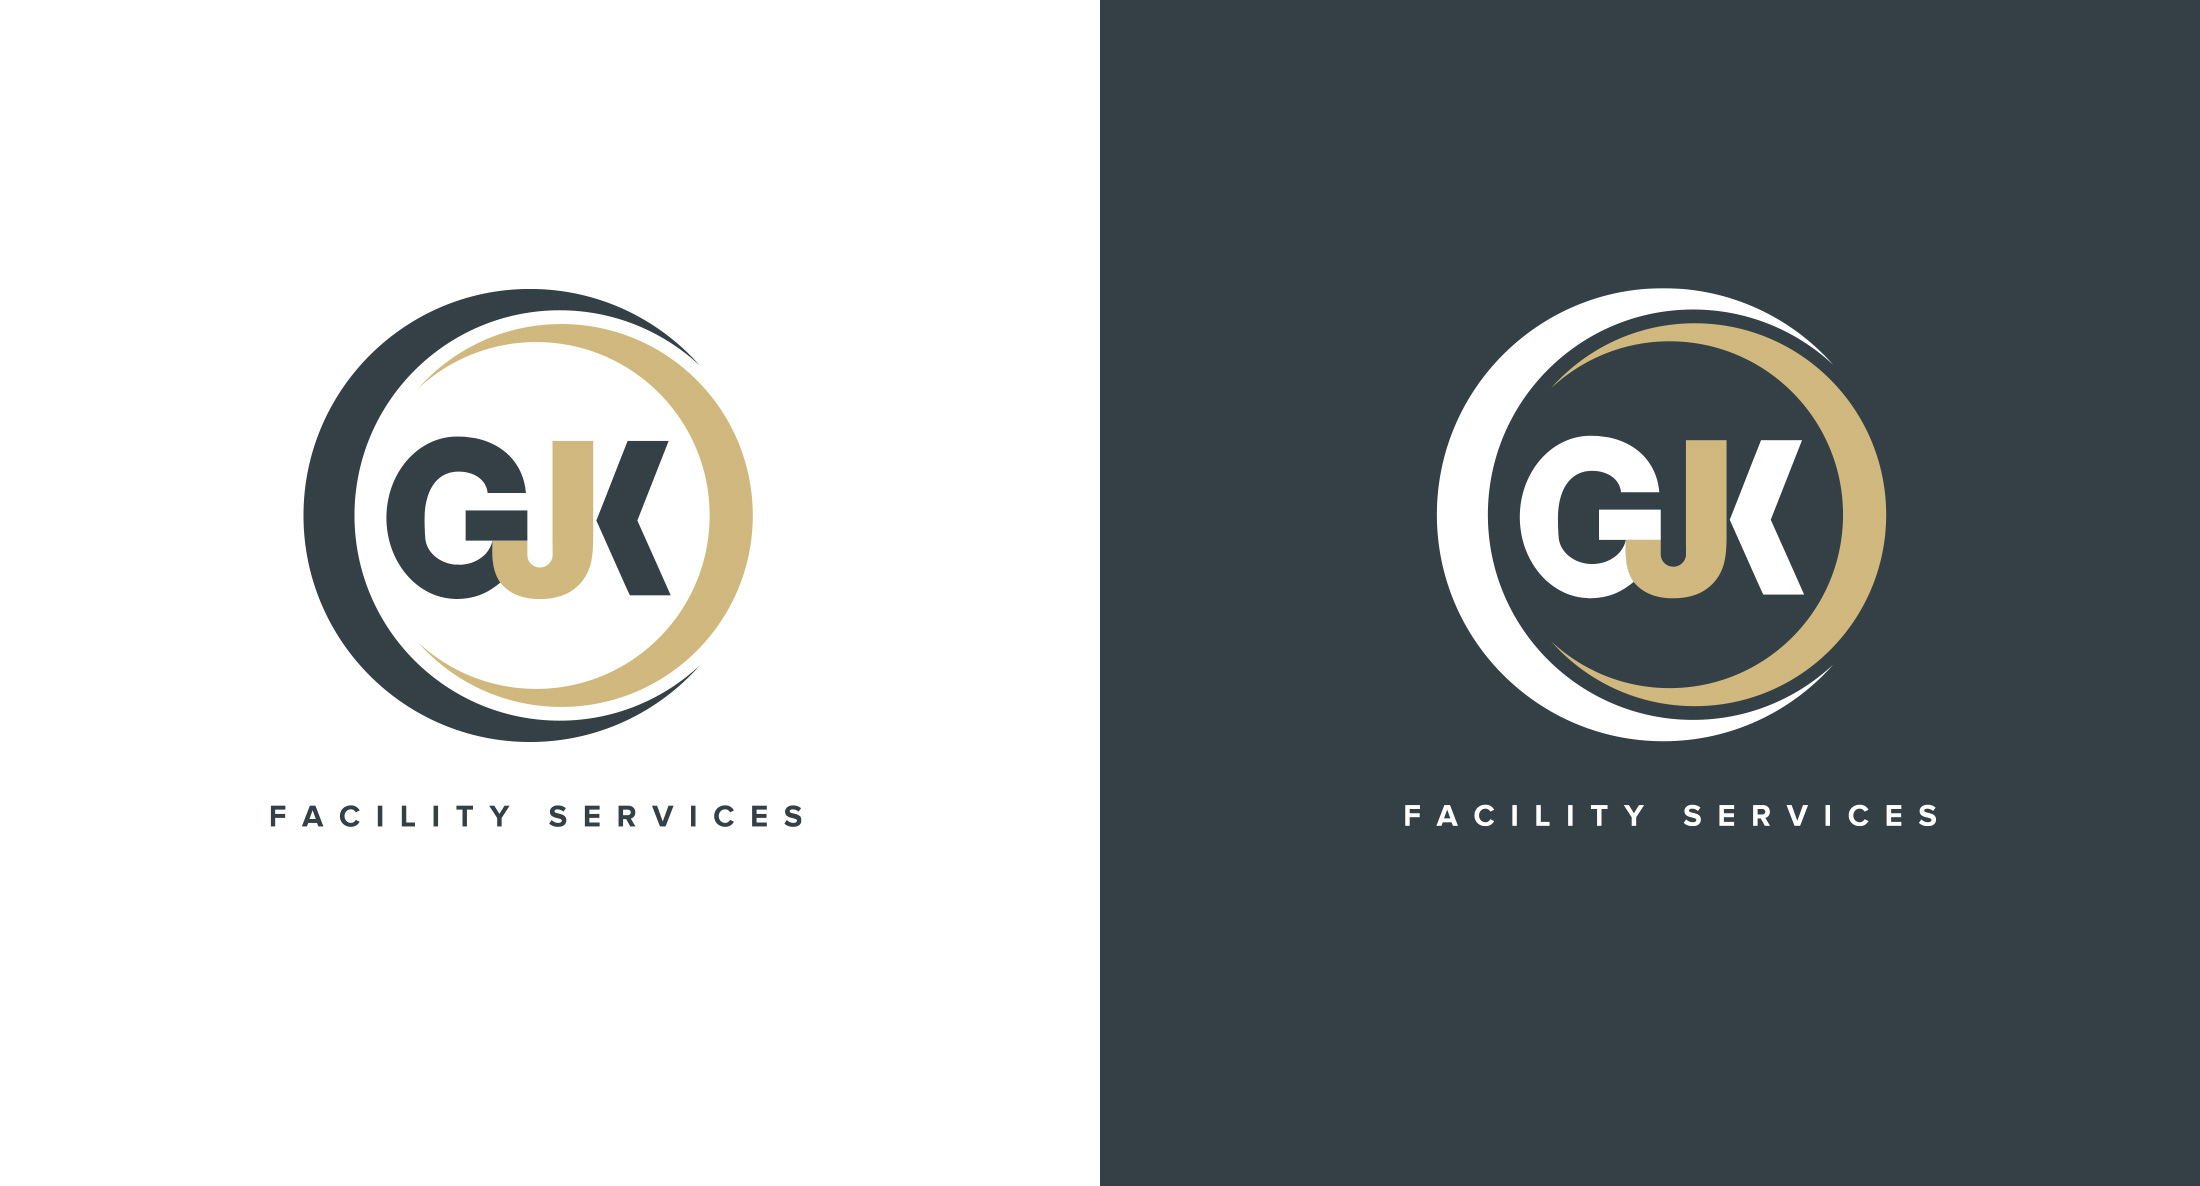 GJK Facility Services